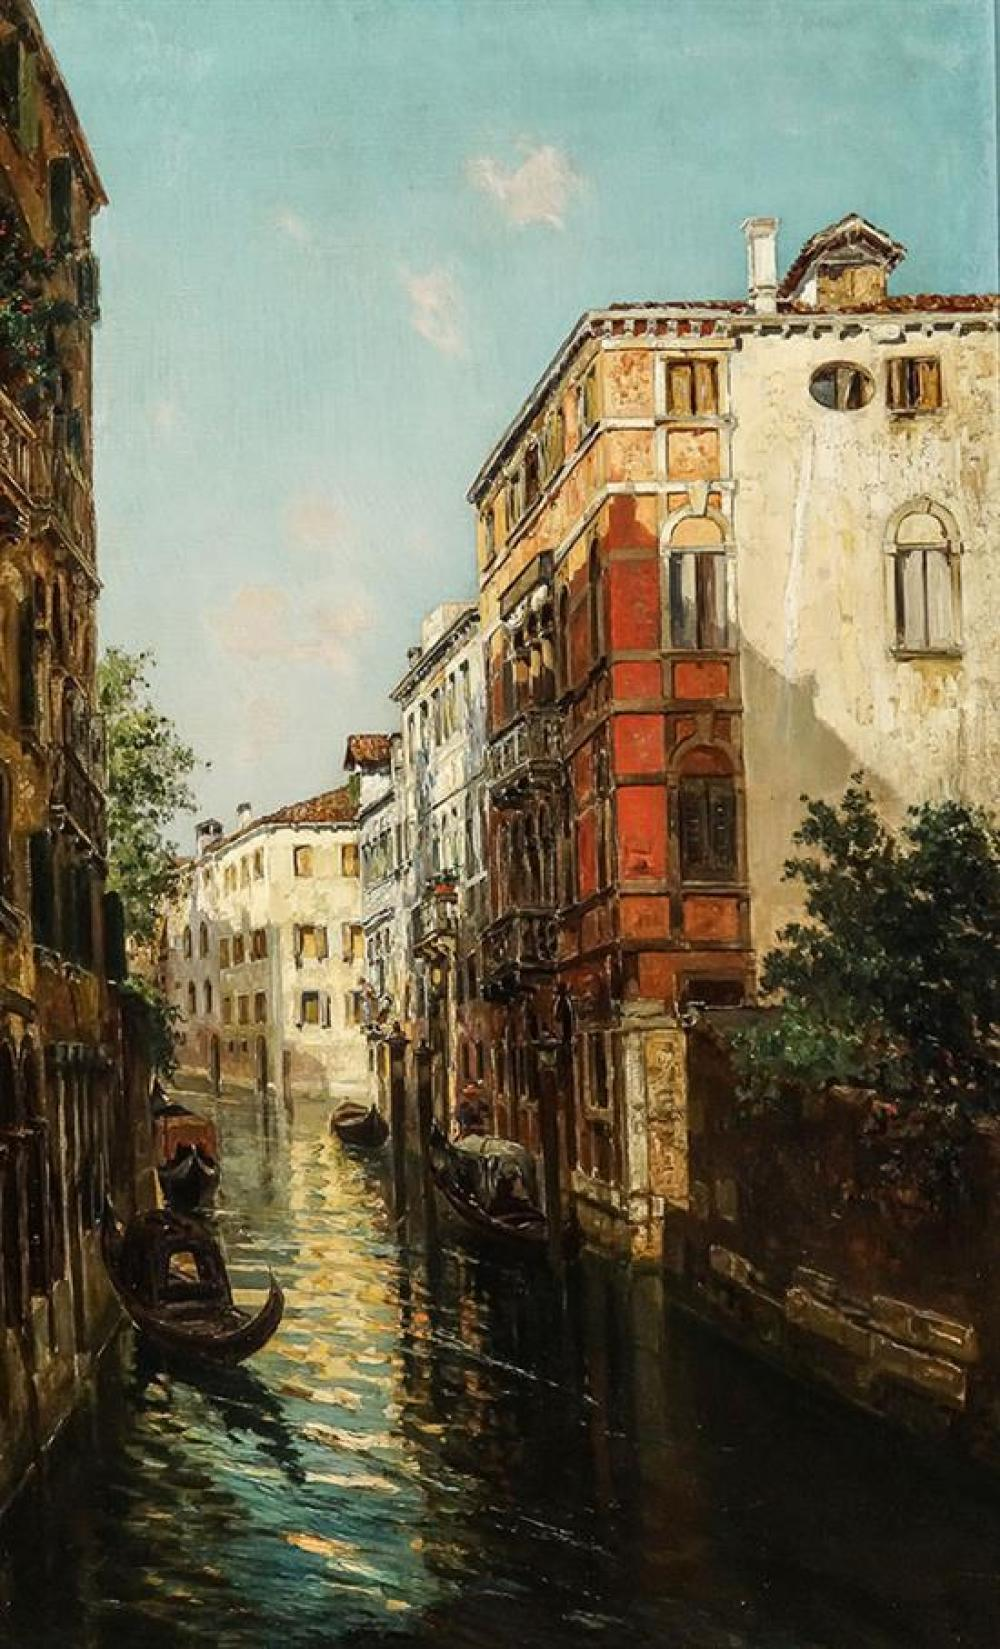 Bernardo Hay (British 1864-1931), Sunlight and Shadow, Venice, Signed Oil on Canvas, 37-3/4 x 23-1/2 inches